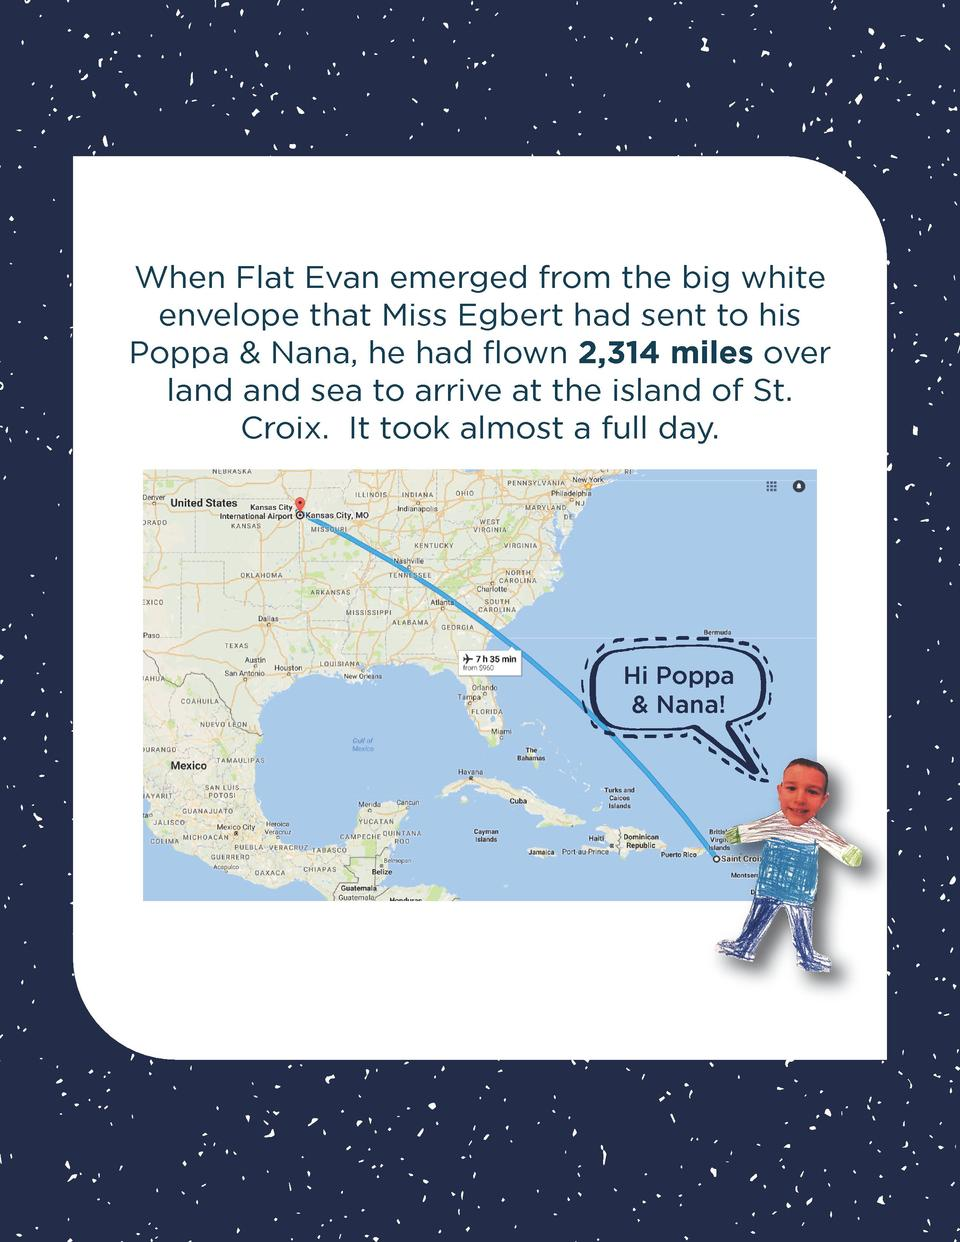 When Flat Evan emerged from the big white envelope that Miss Egbert had sent to his Poppa   Nana, he had flown 2,314 miles...